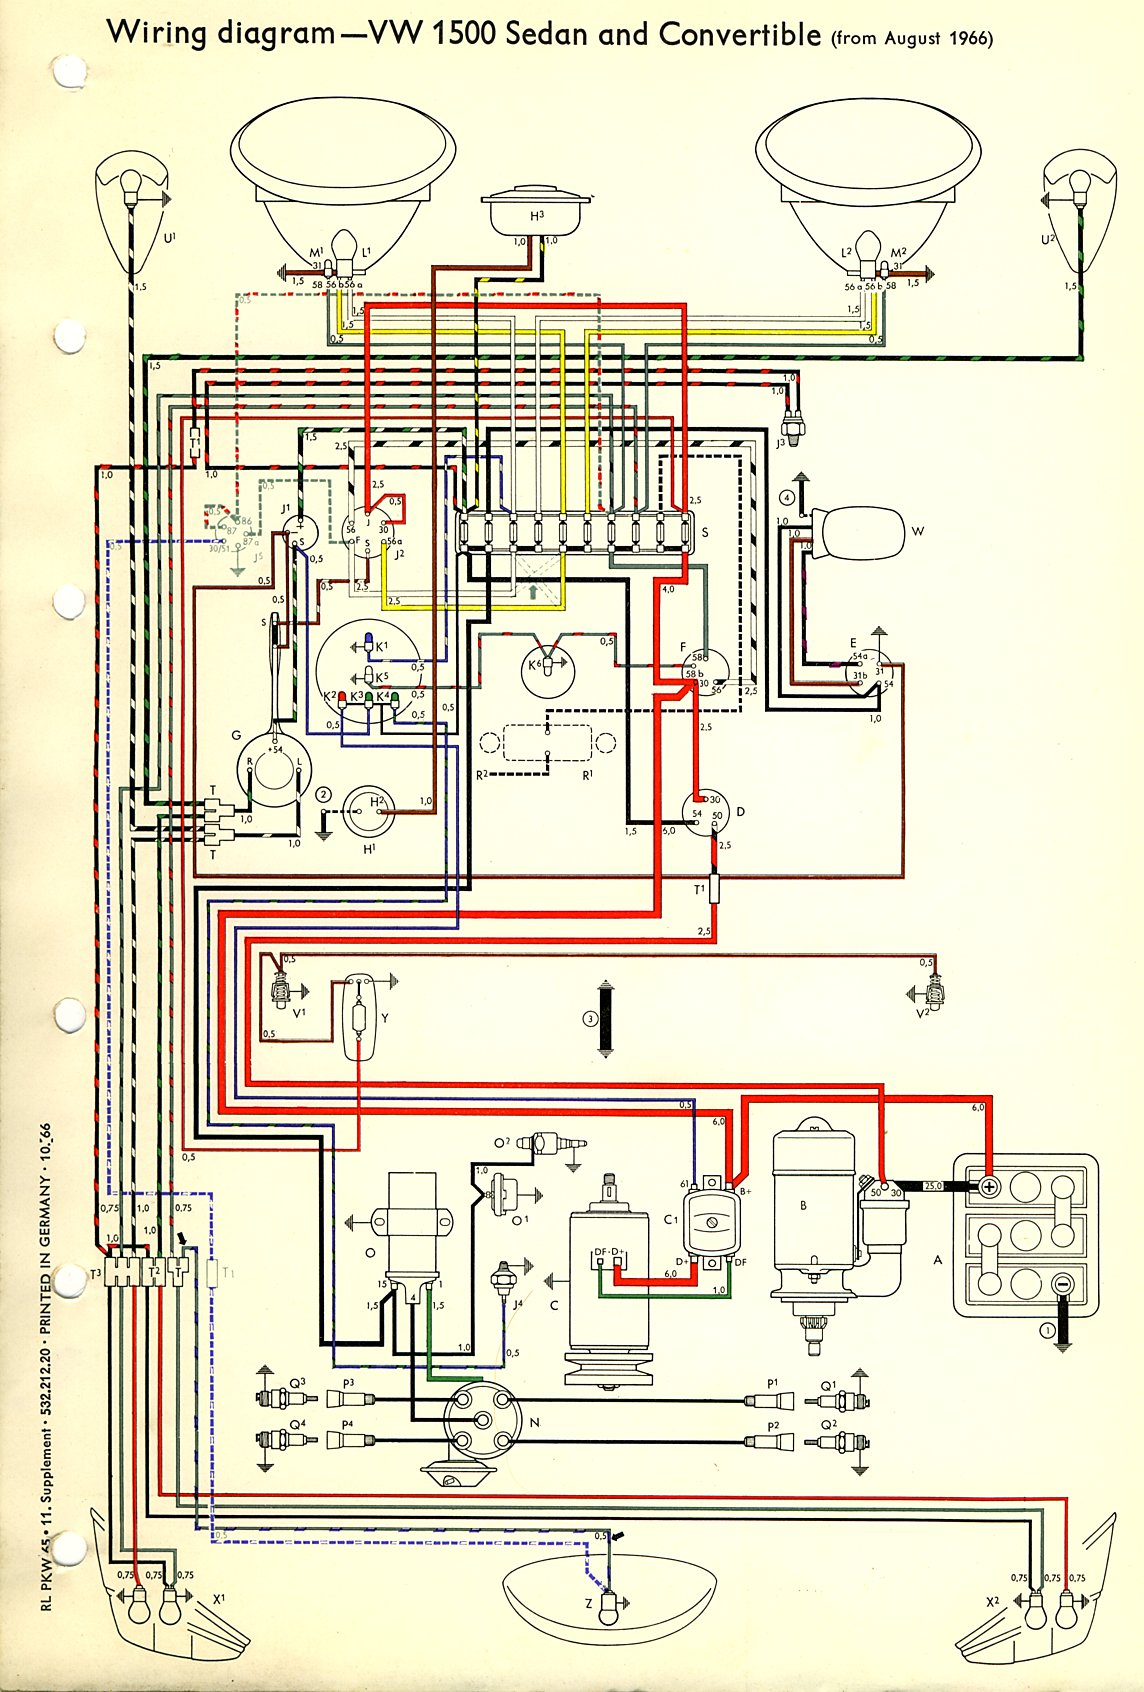 1974 volkswagen wiring diagrams thesamba.com :: type 1 wiring diagrams